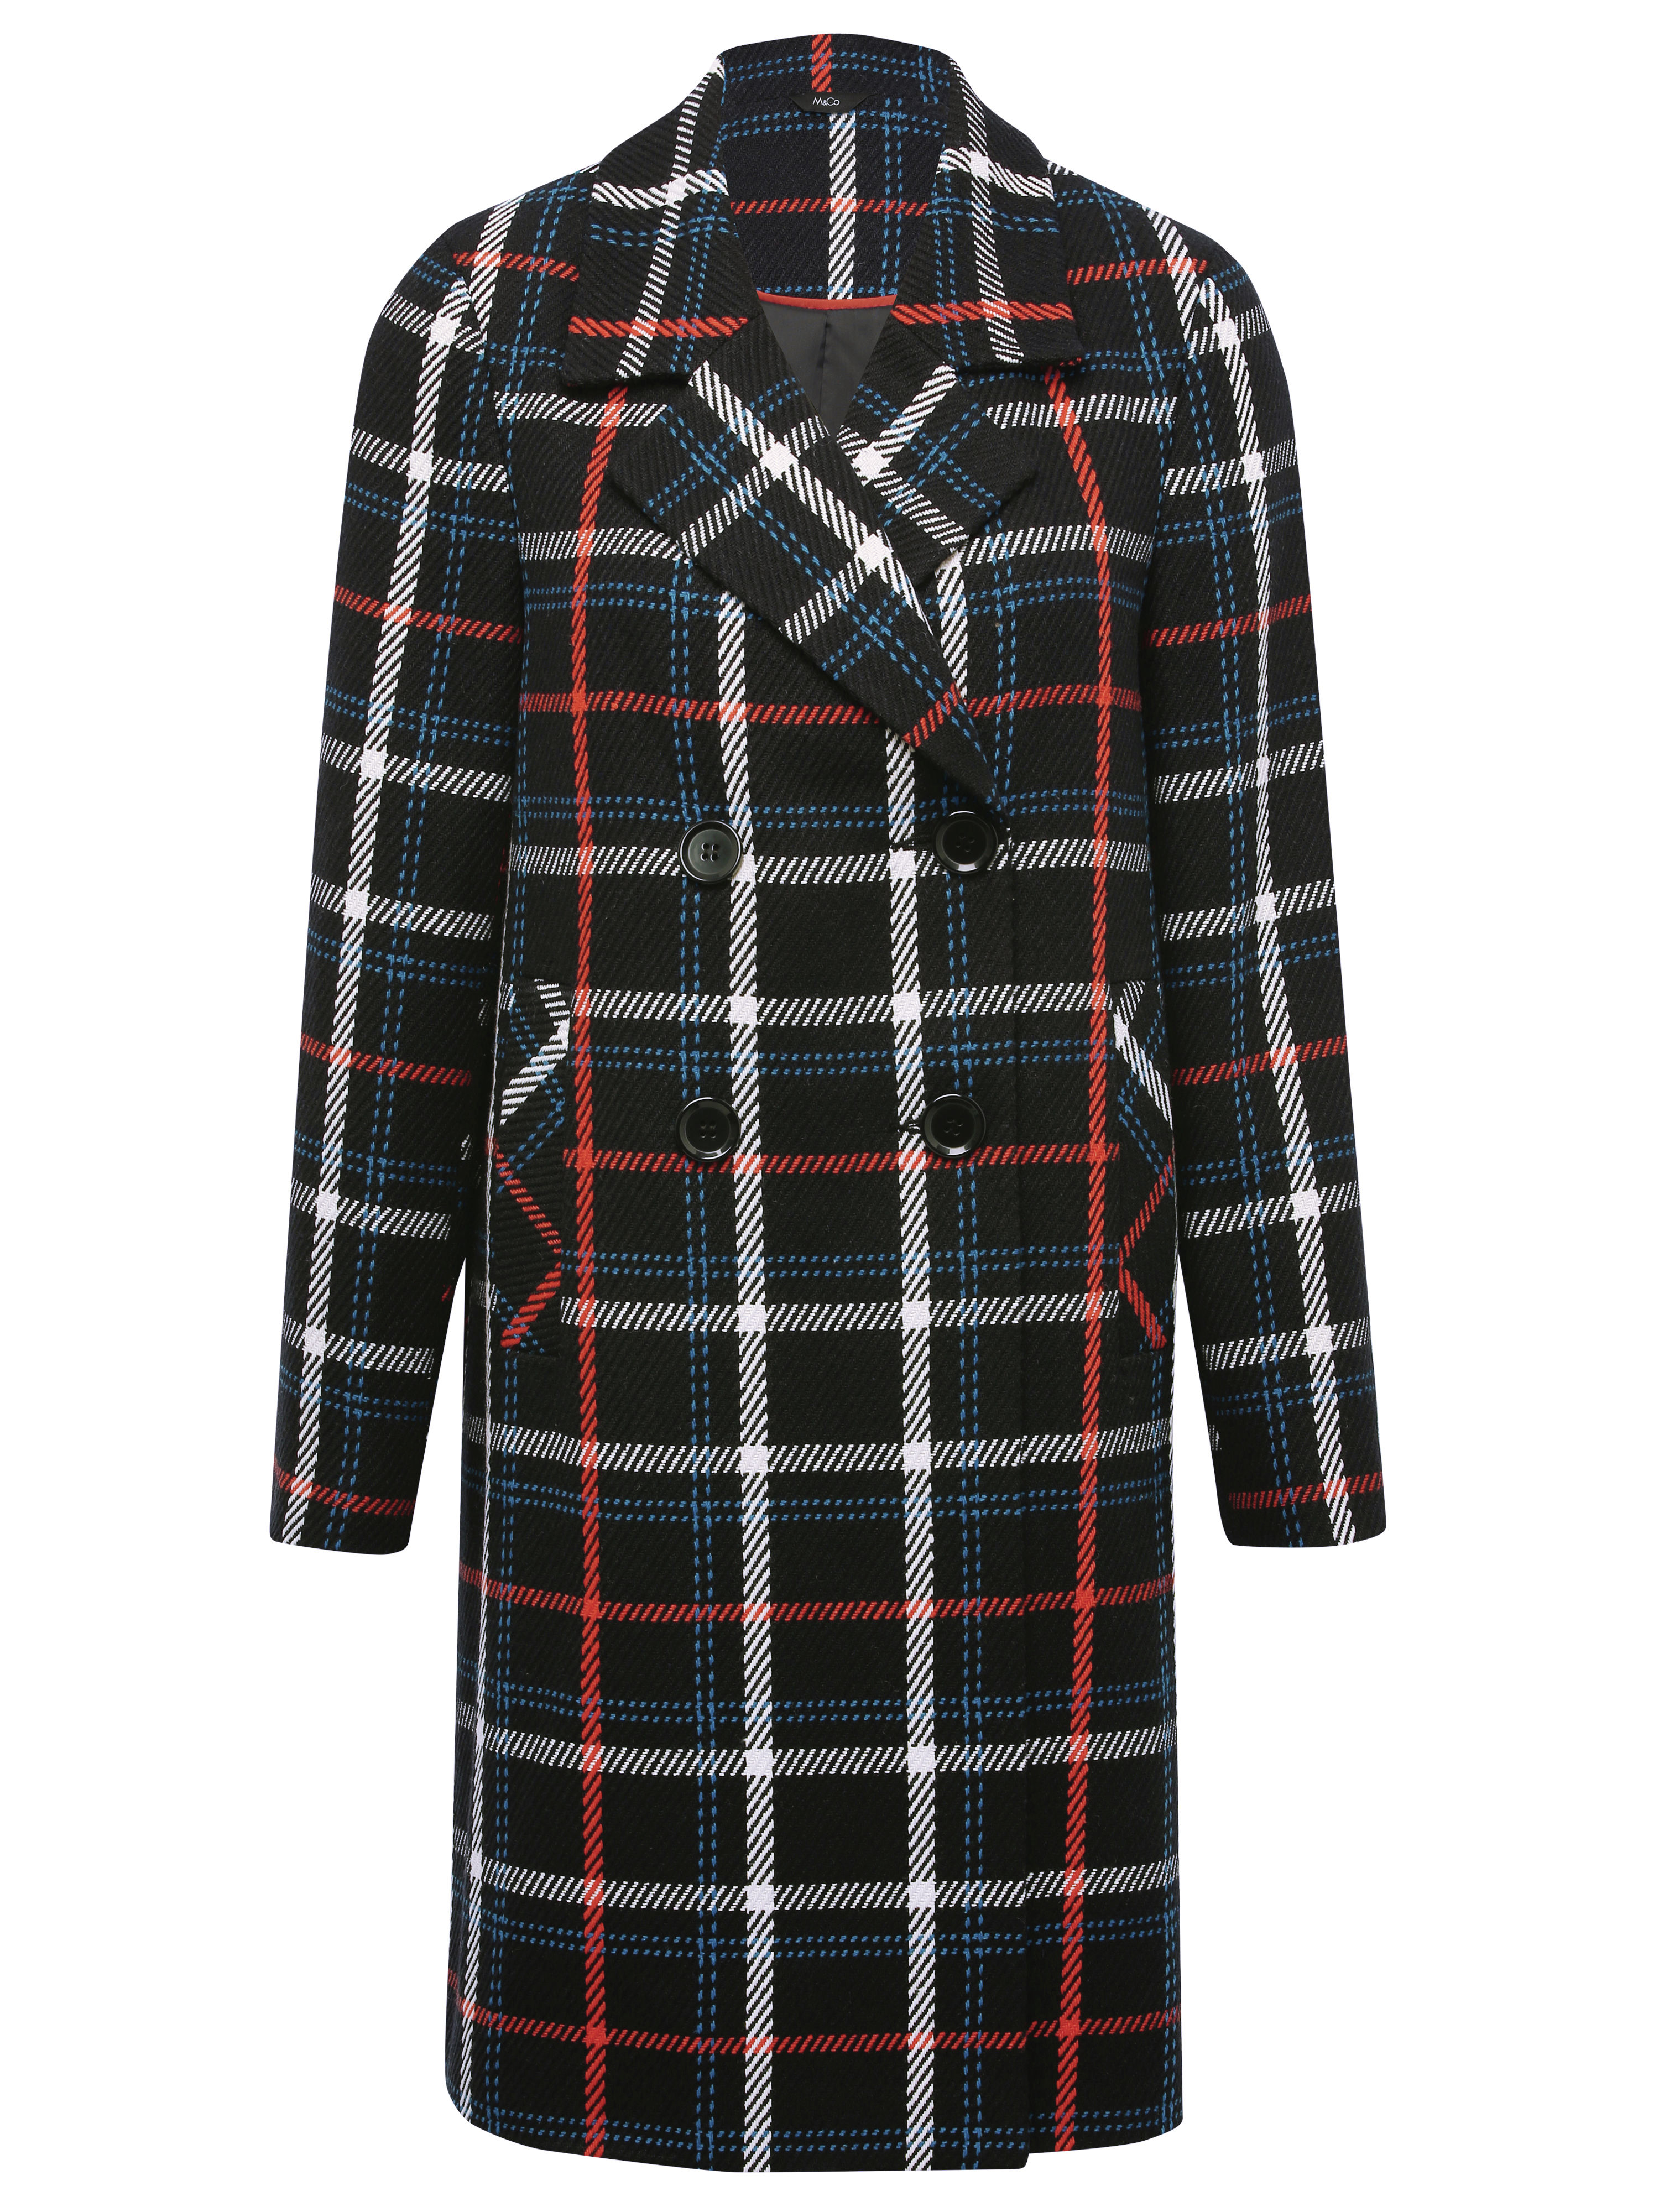 Blue, red and white check coat £75